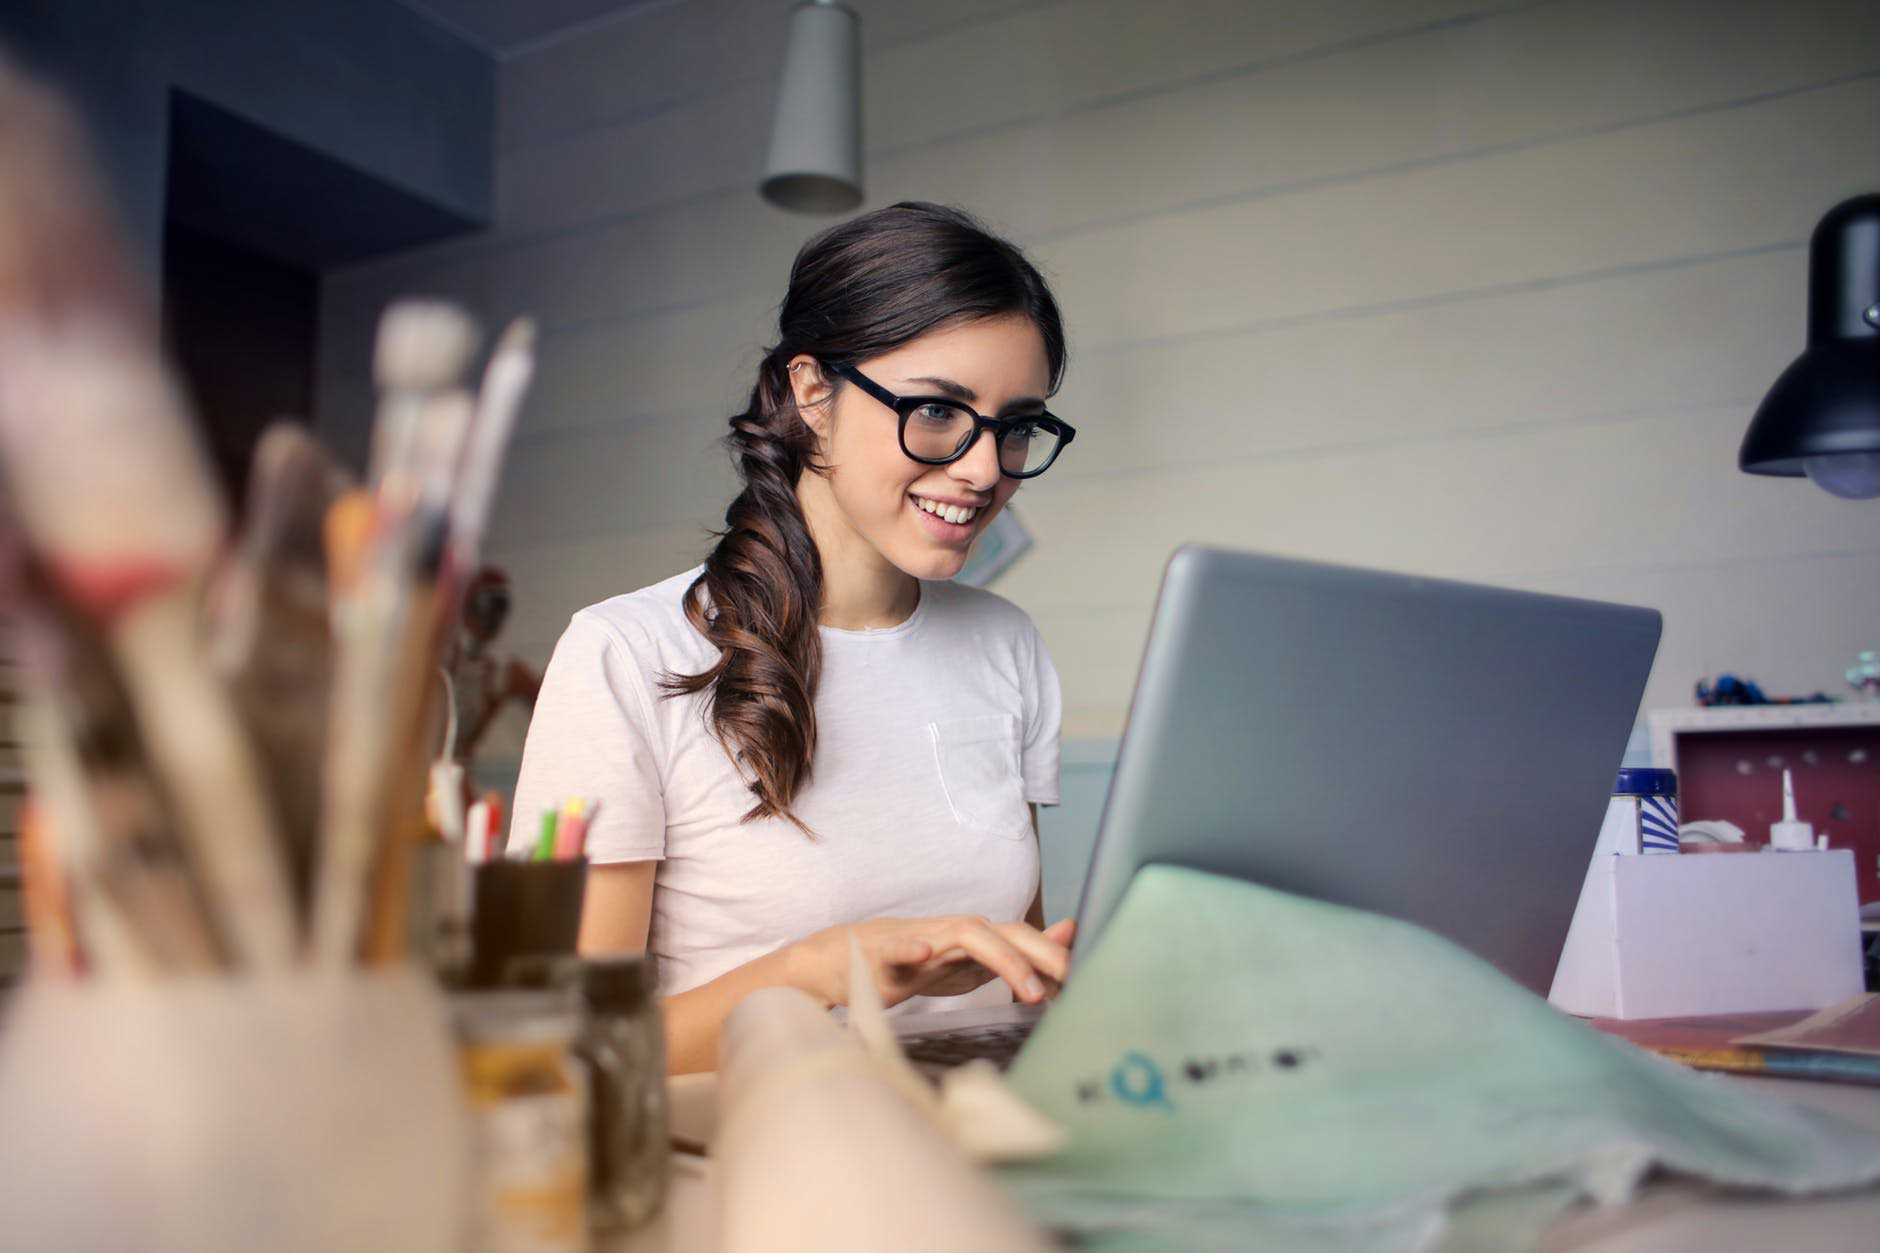 Woman working on laptop looking happy becuase of positive work-life balance in Birmingham